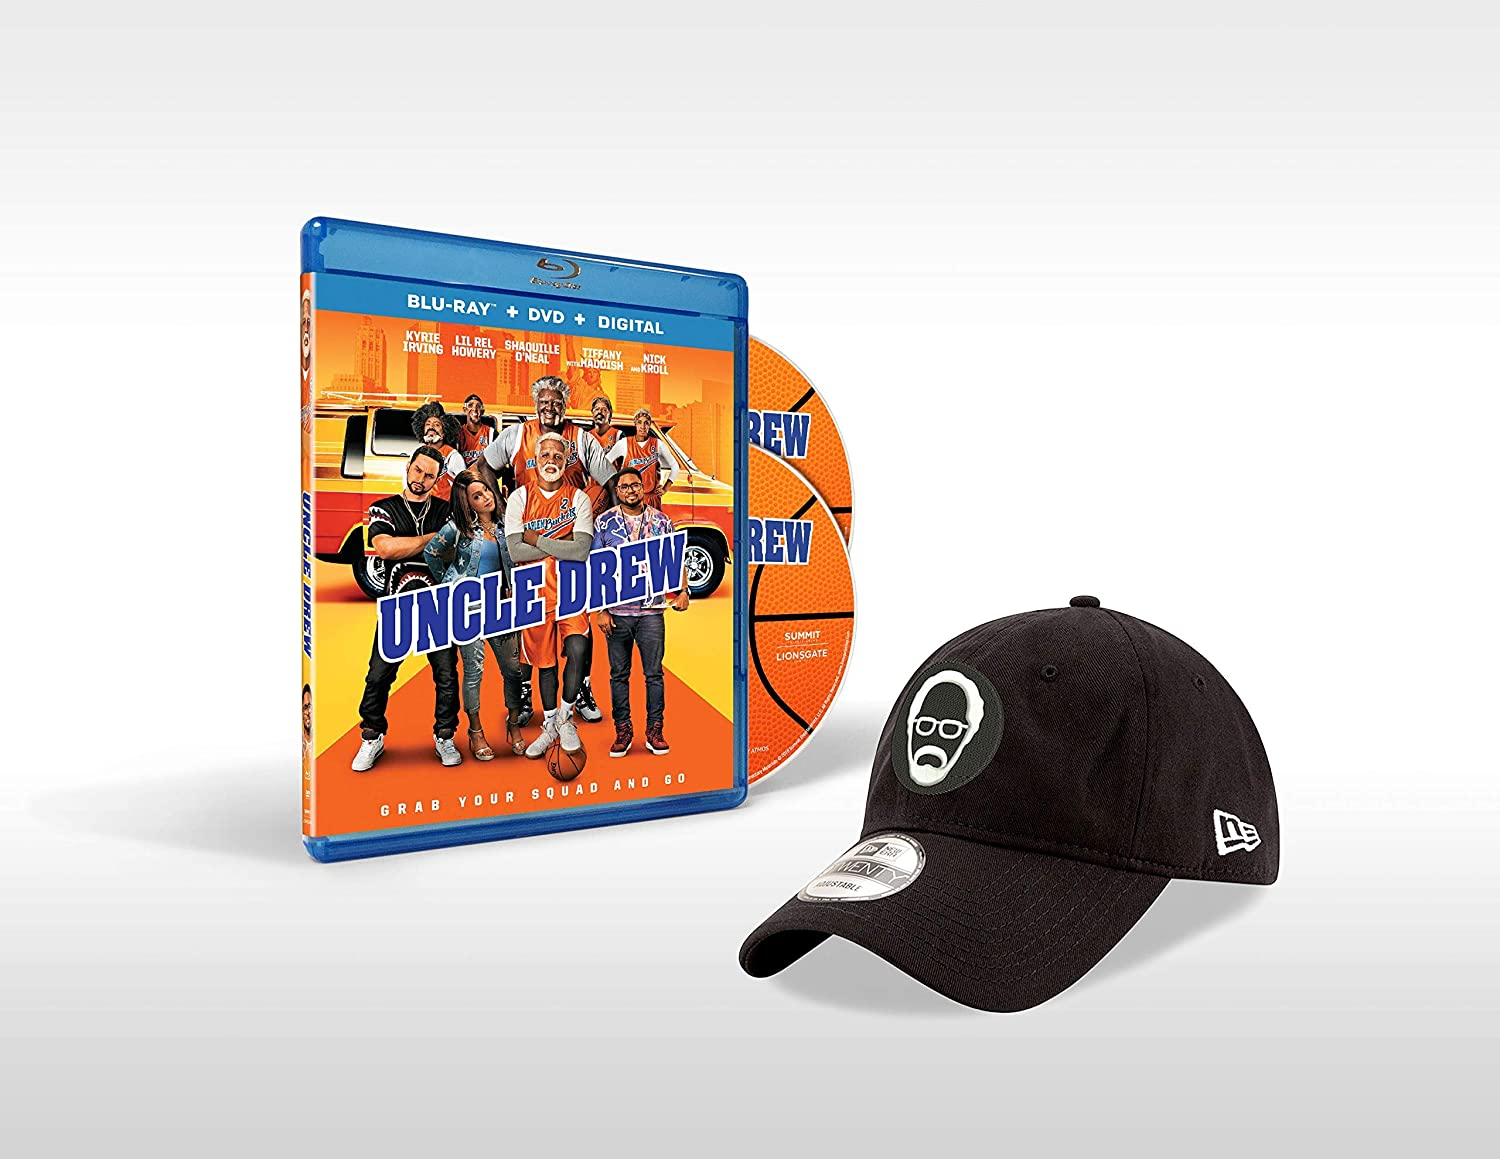 Amazon.com  Uncle Drew Blu-ray with Hat  Blu-ray   Movies   TV d43419b4747